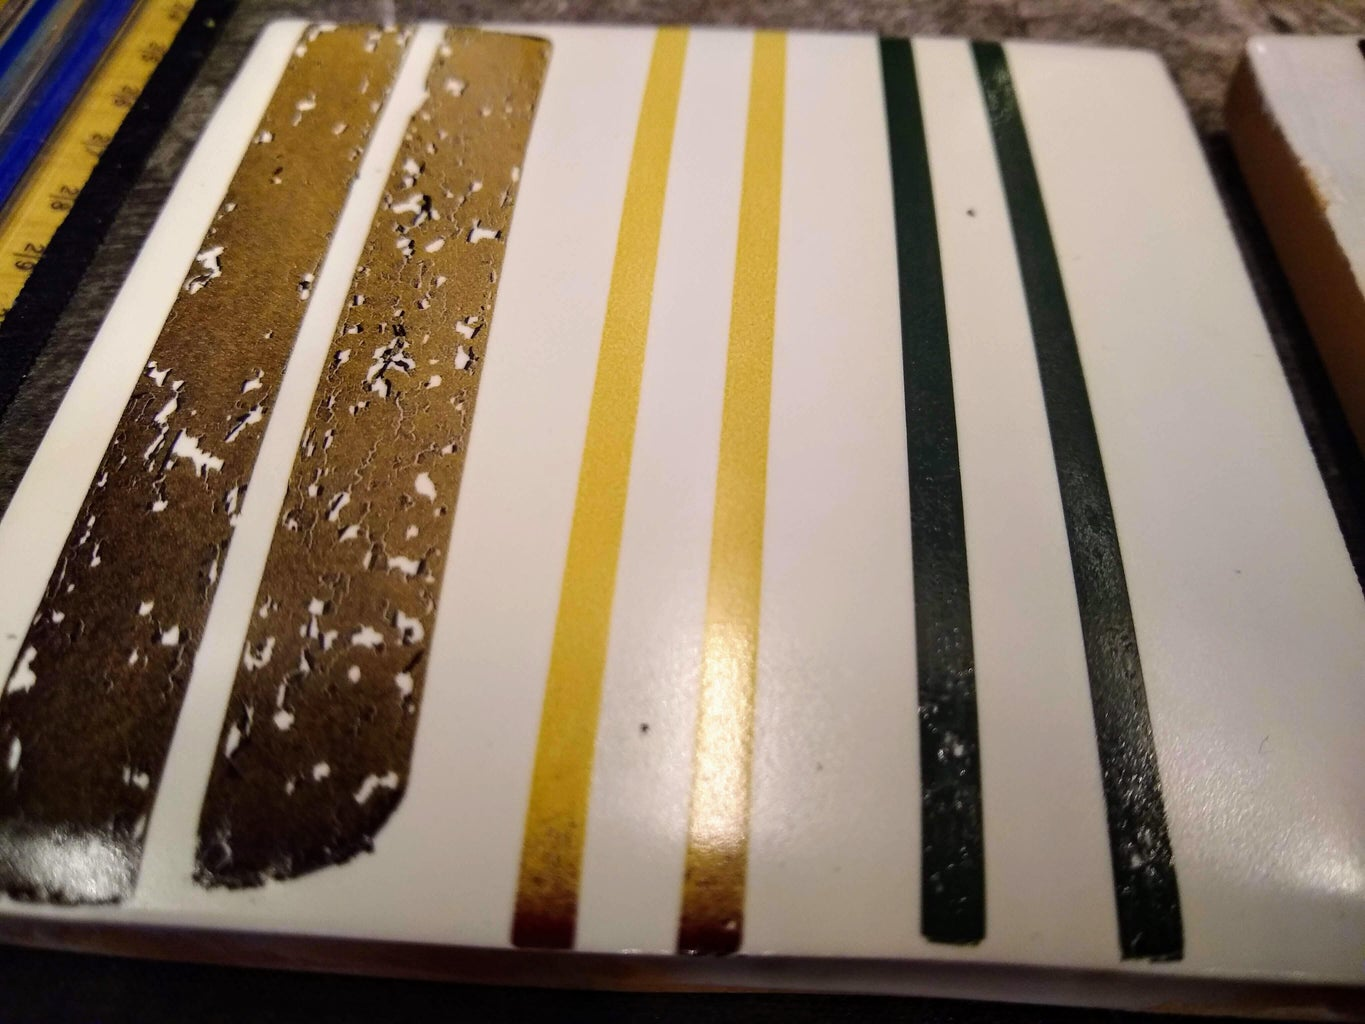 Further Experiments - Magnetic Tape